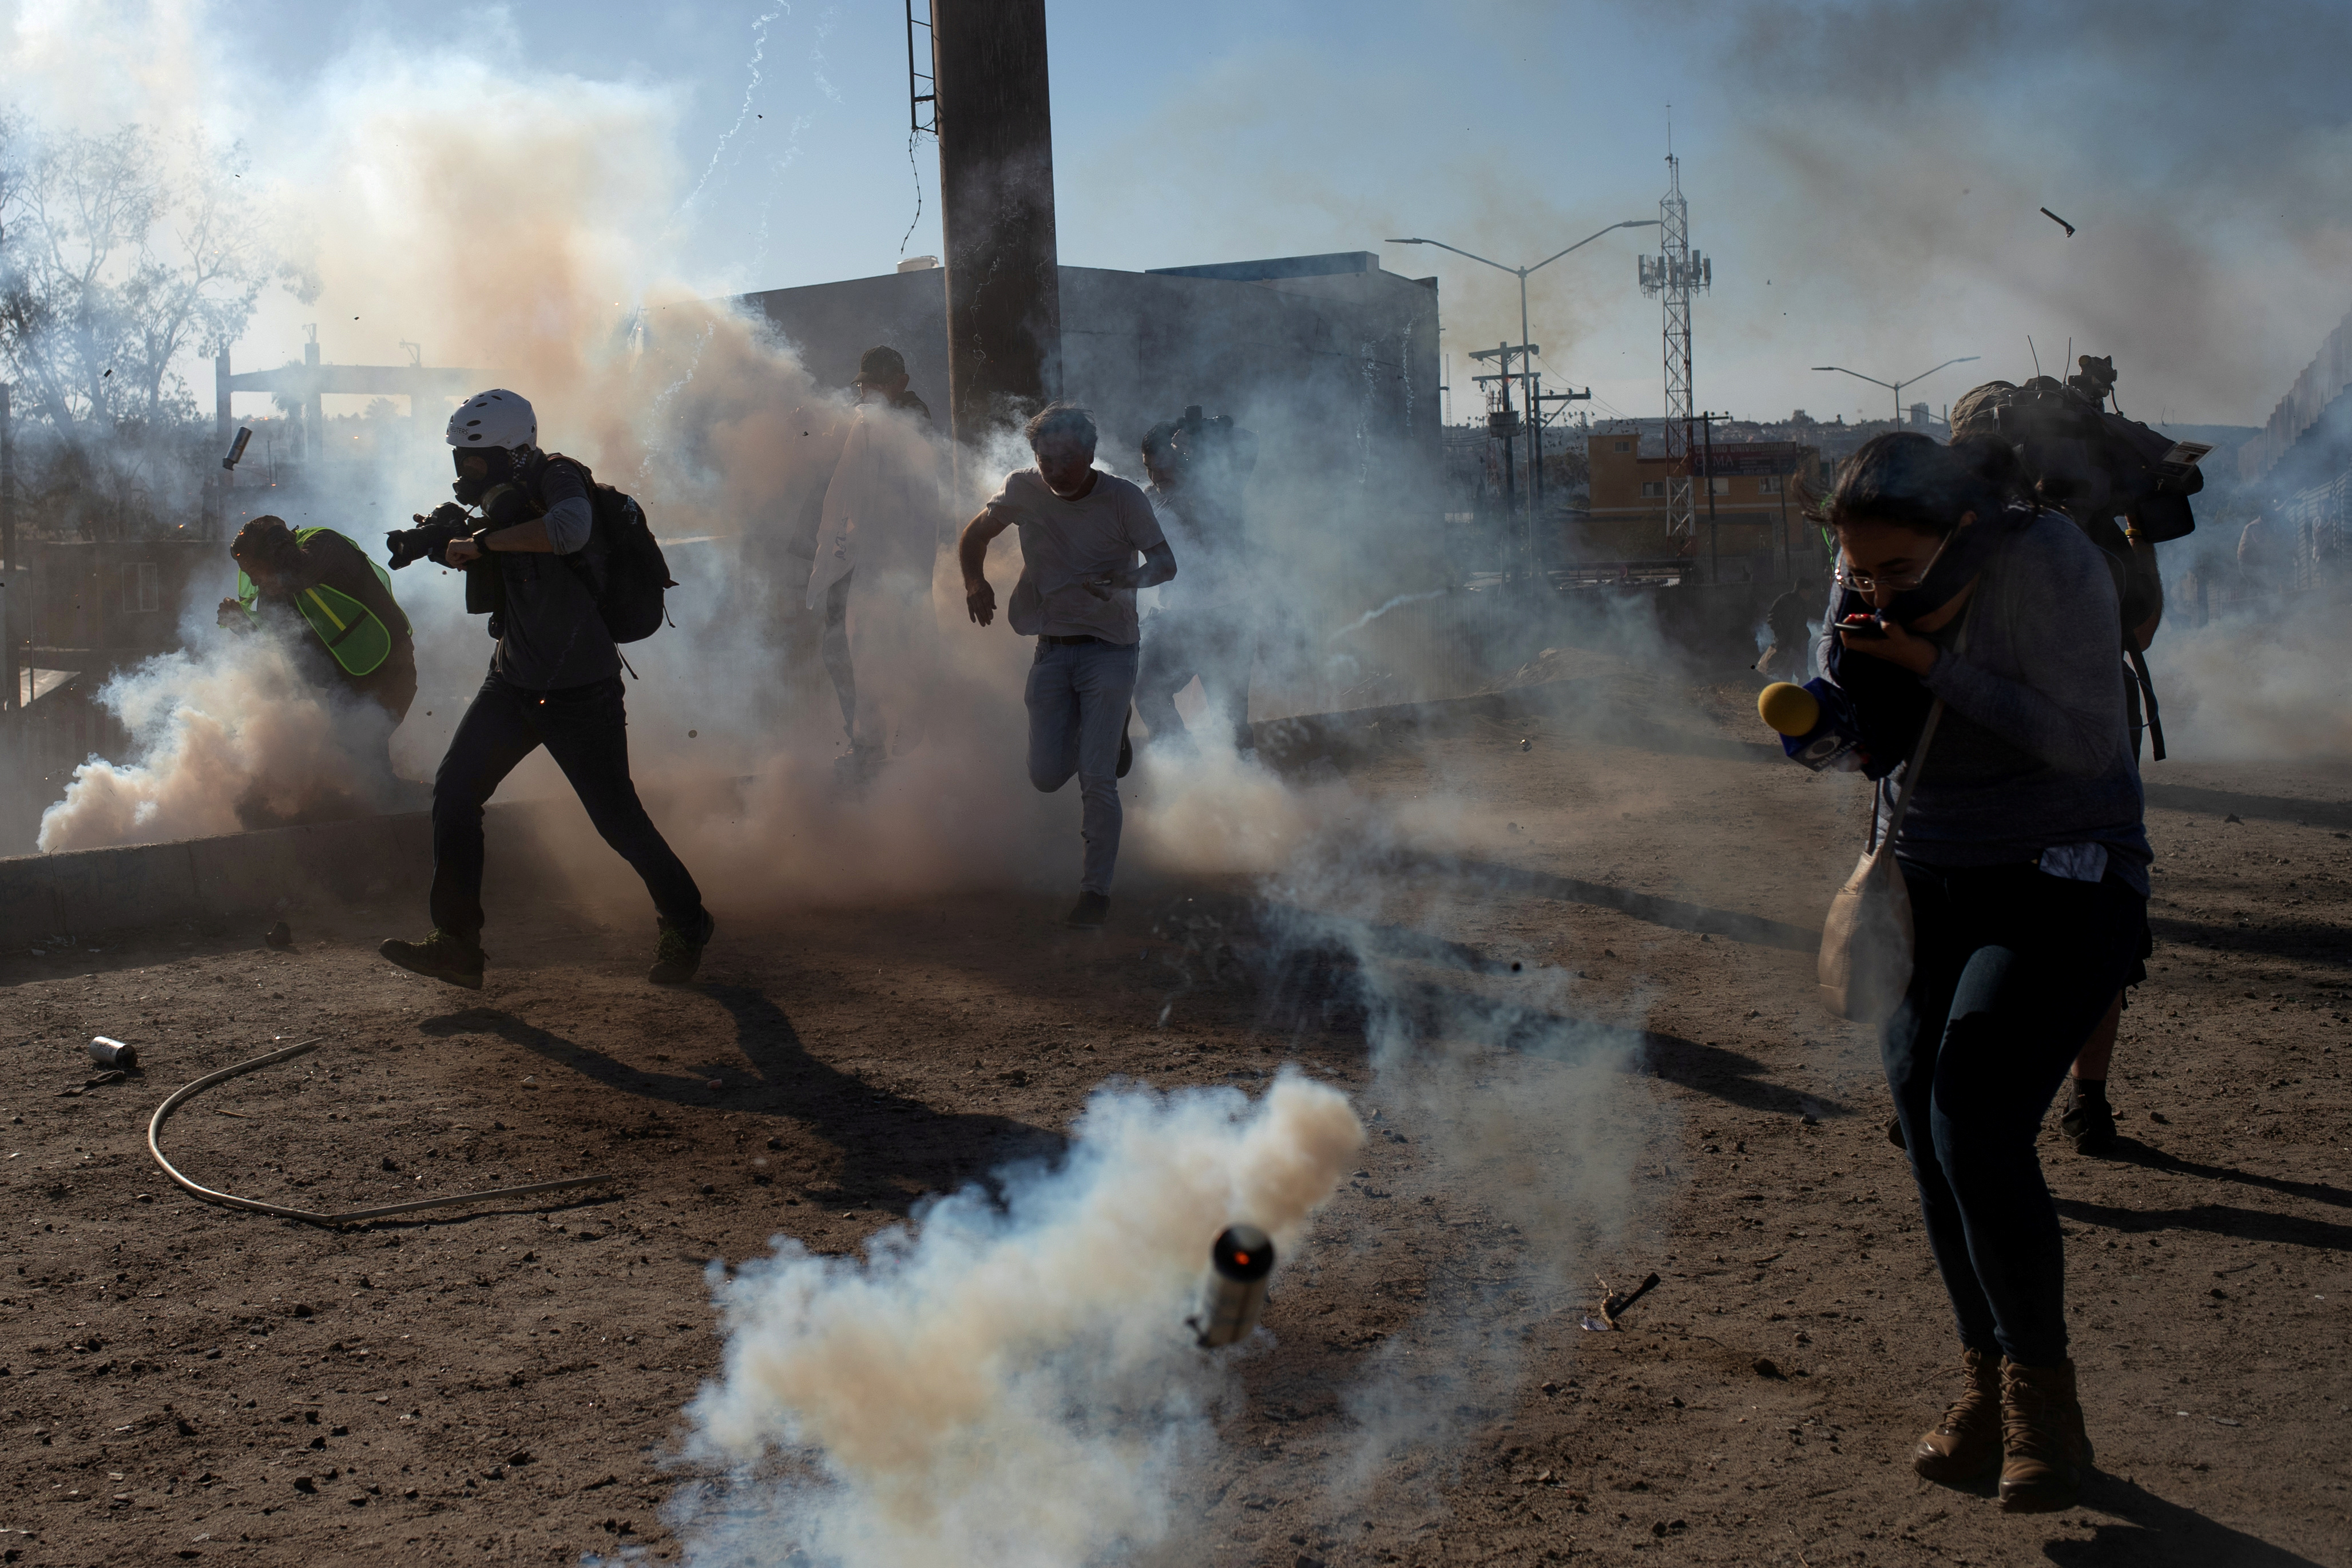 Migrants from Central America and journalists are hit by tear gas after hundreds tried to illegally cross the Mexico border into the U.S. in Tijuana, Mexico